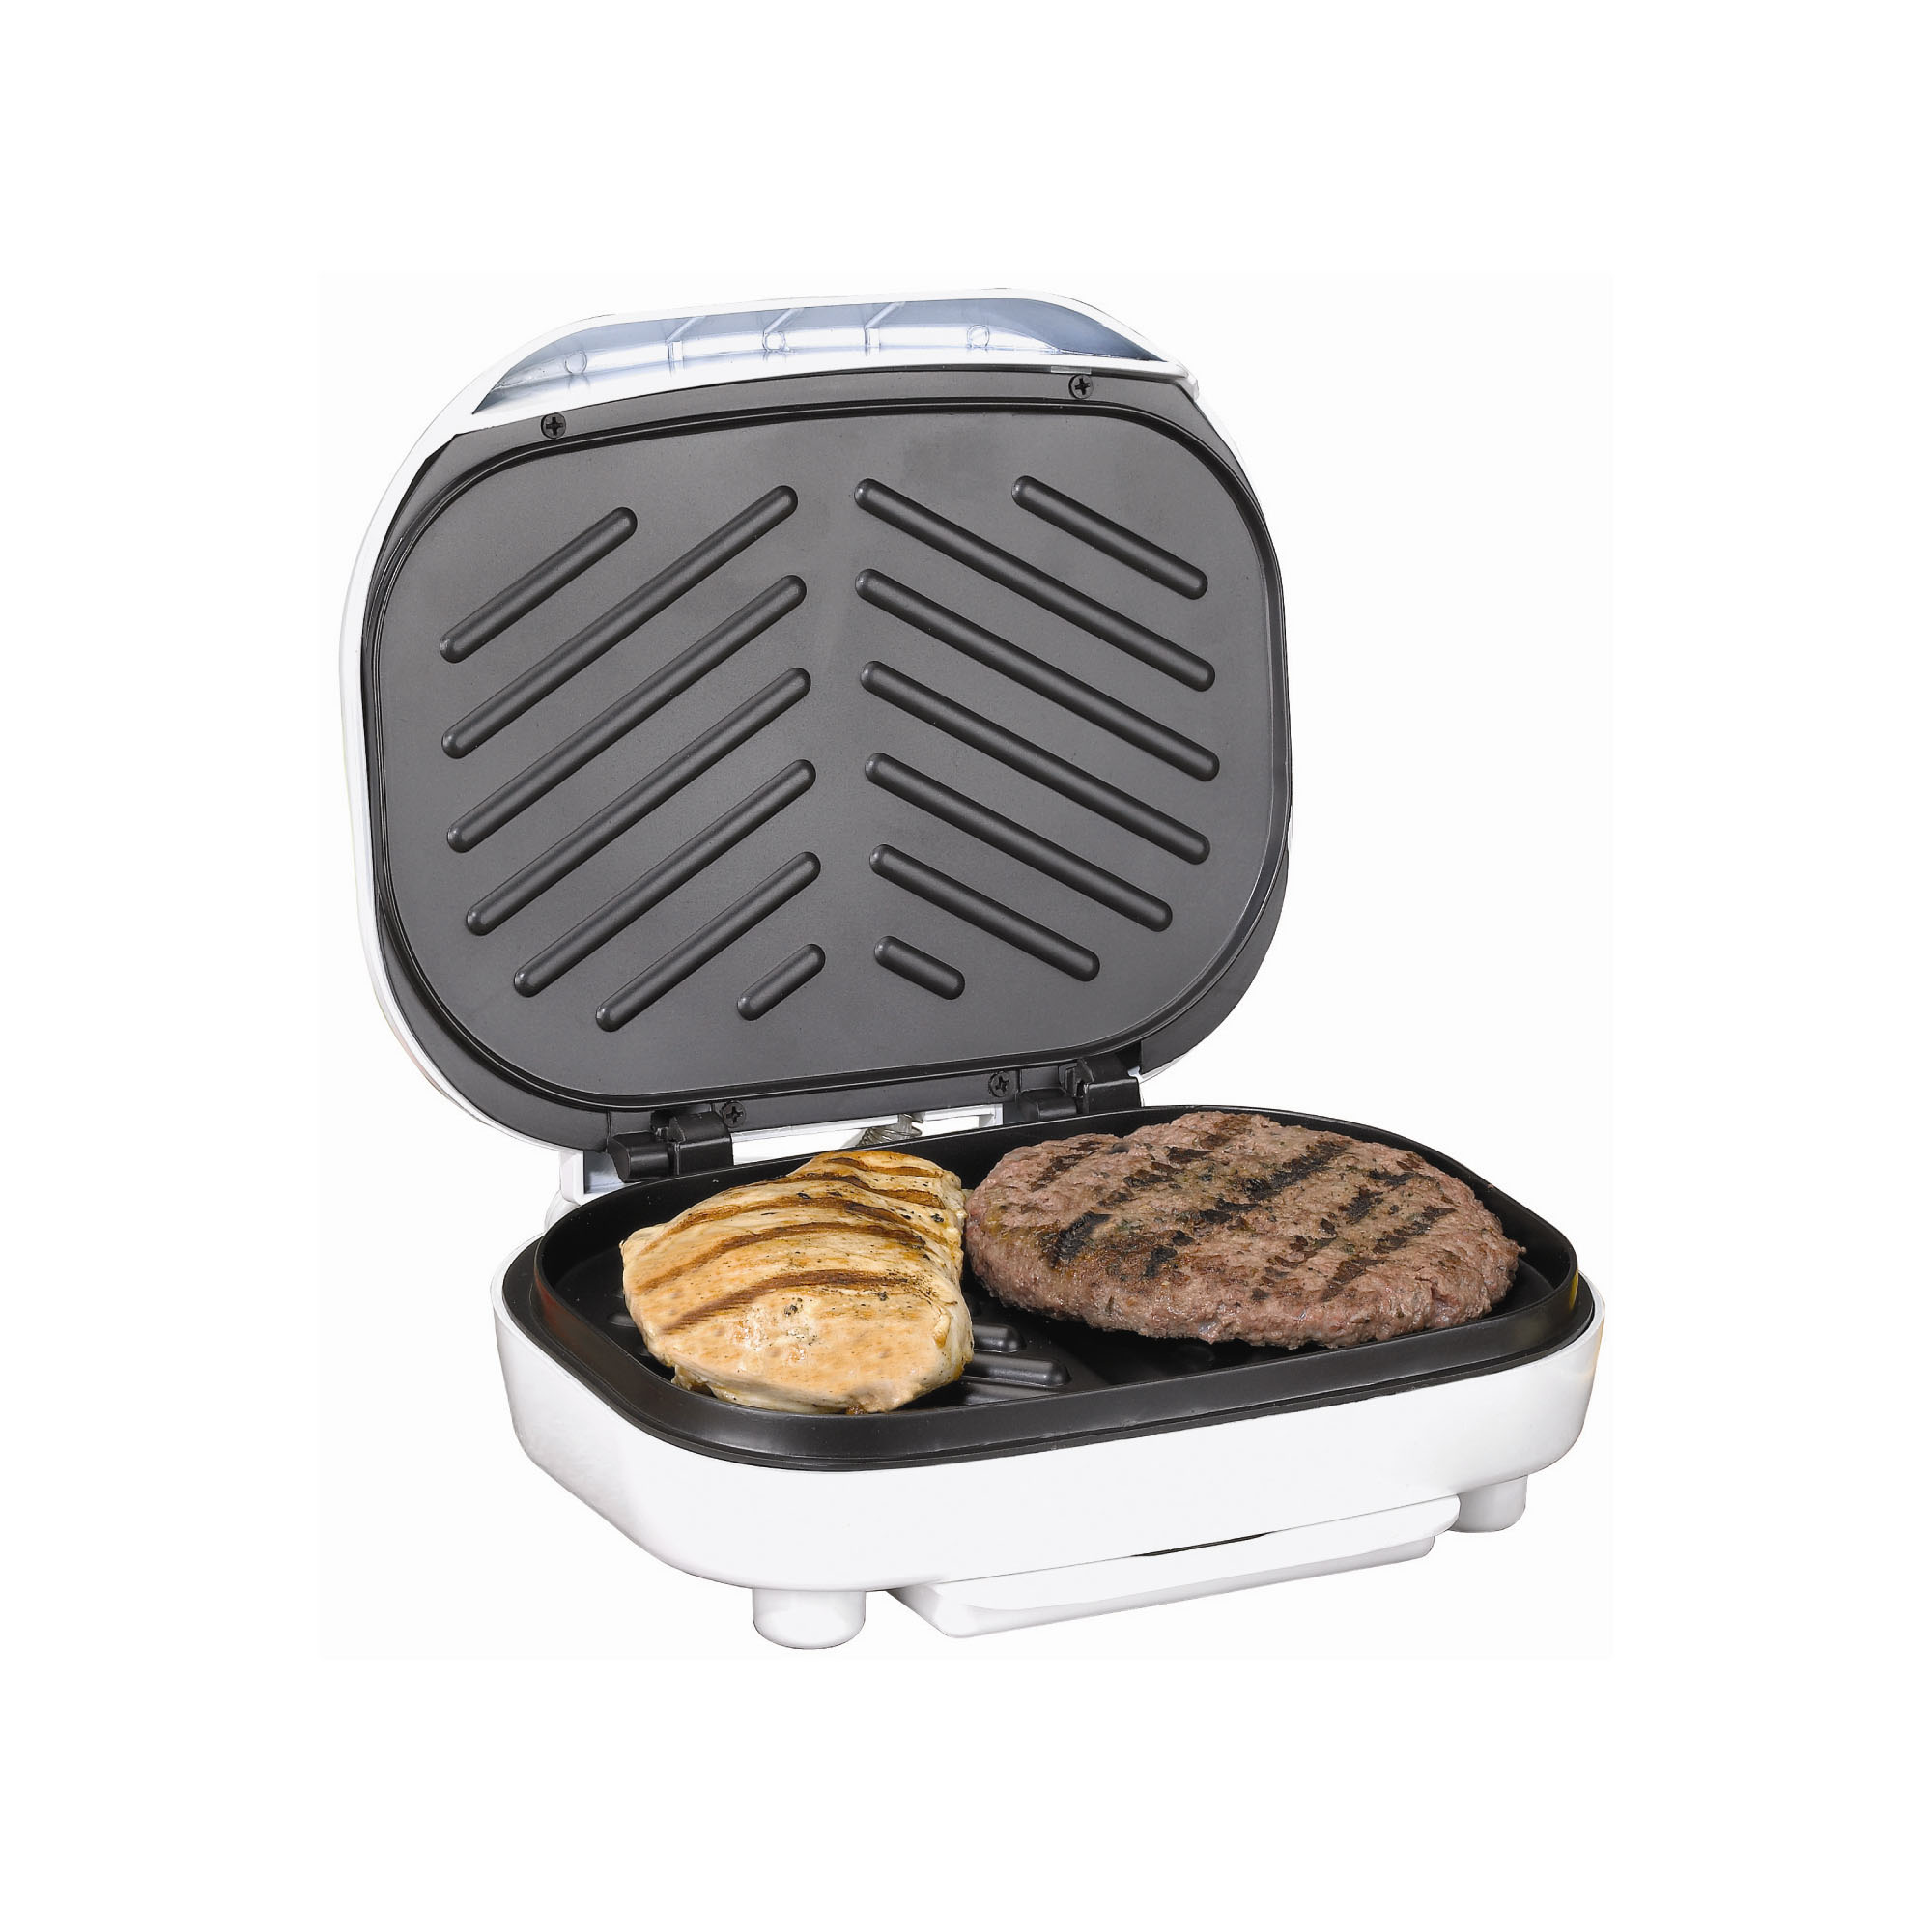 Brentwood Electric Contact Grill 2 Slice Capacity - White